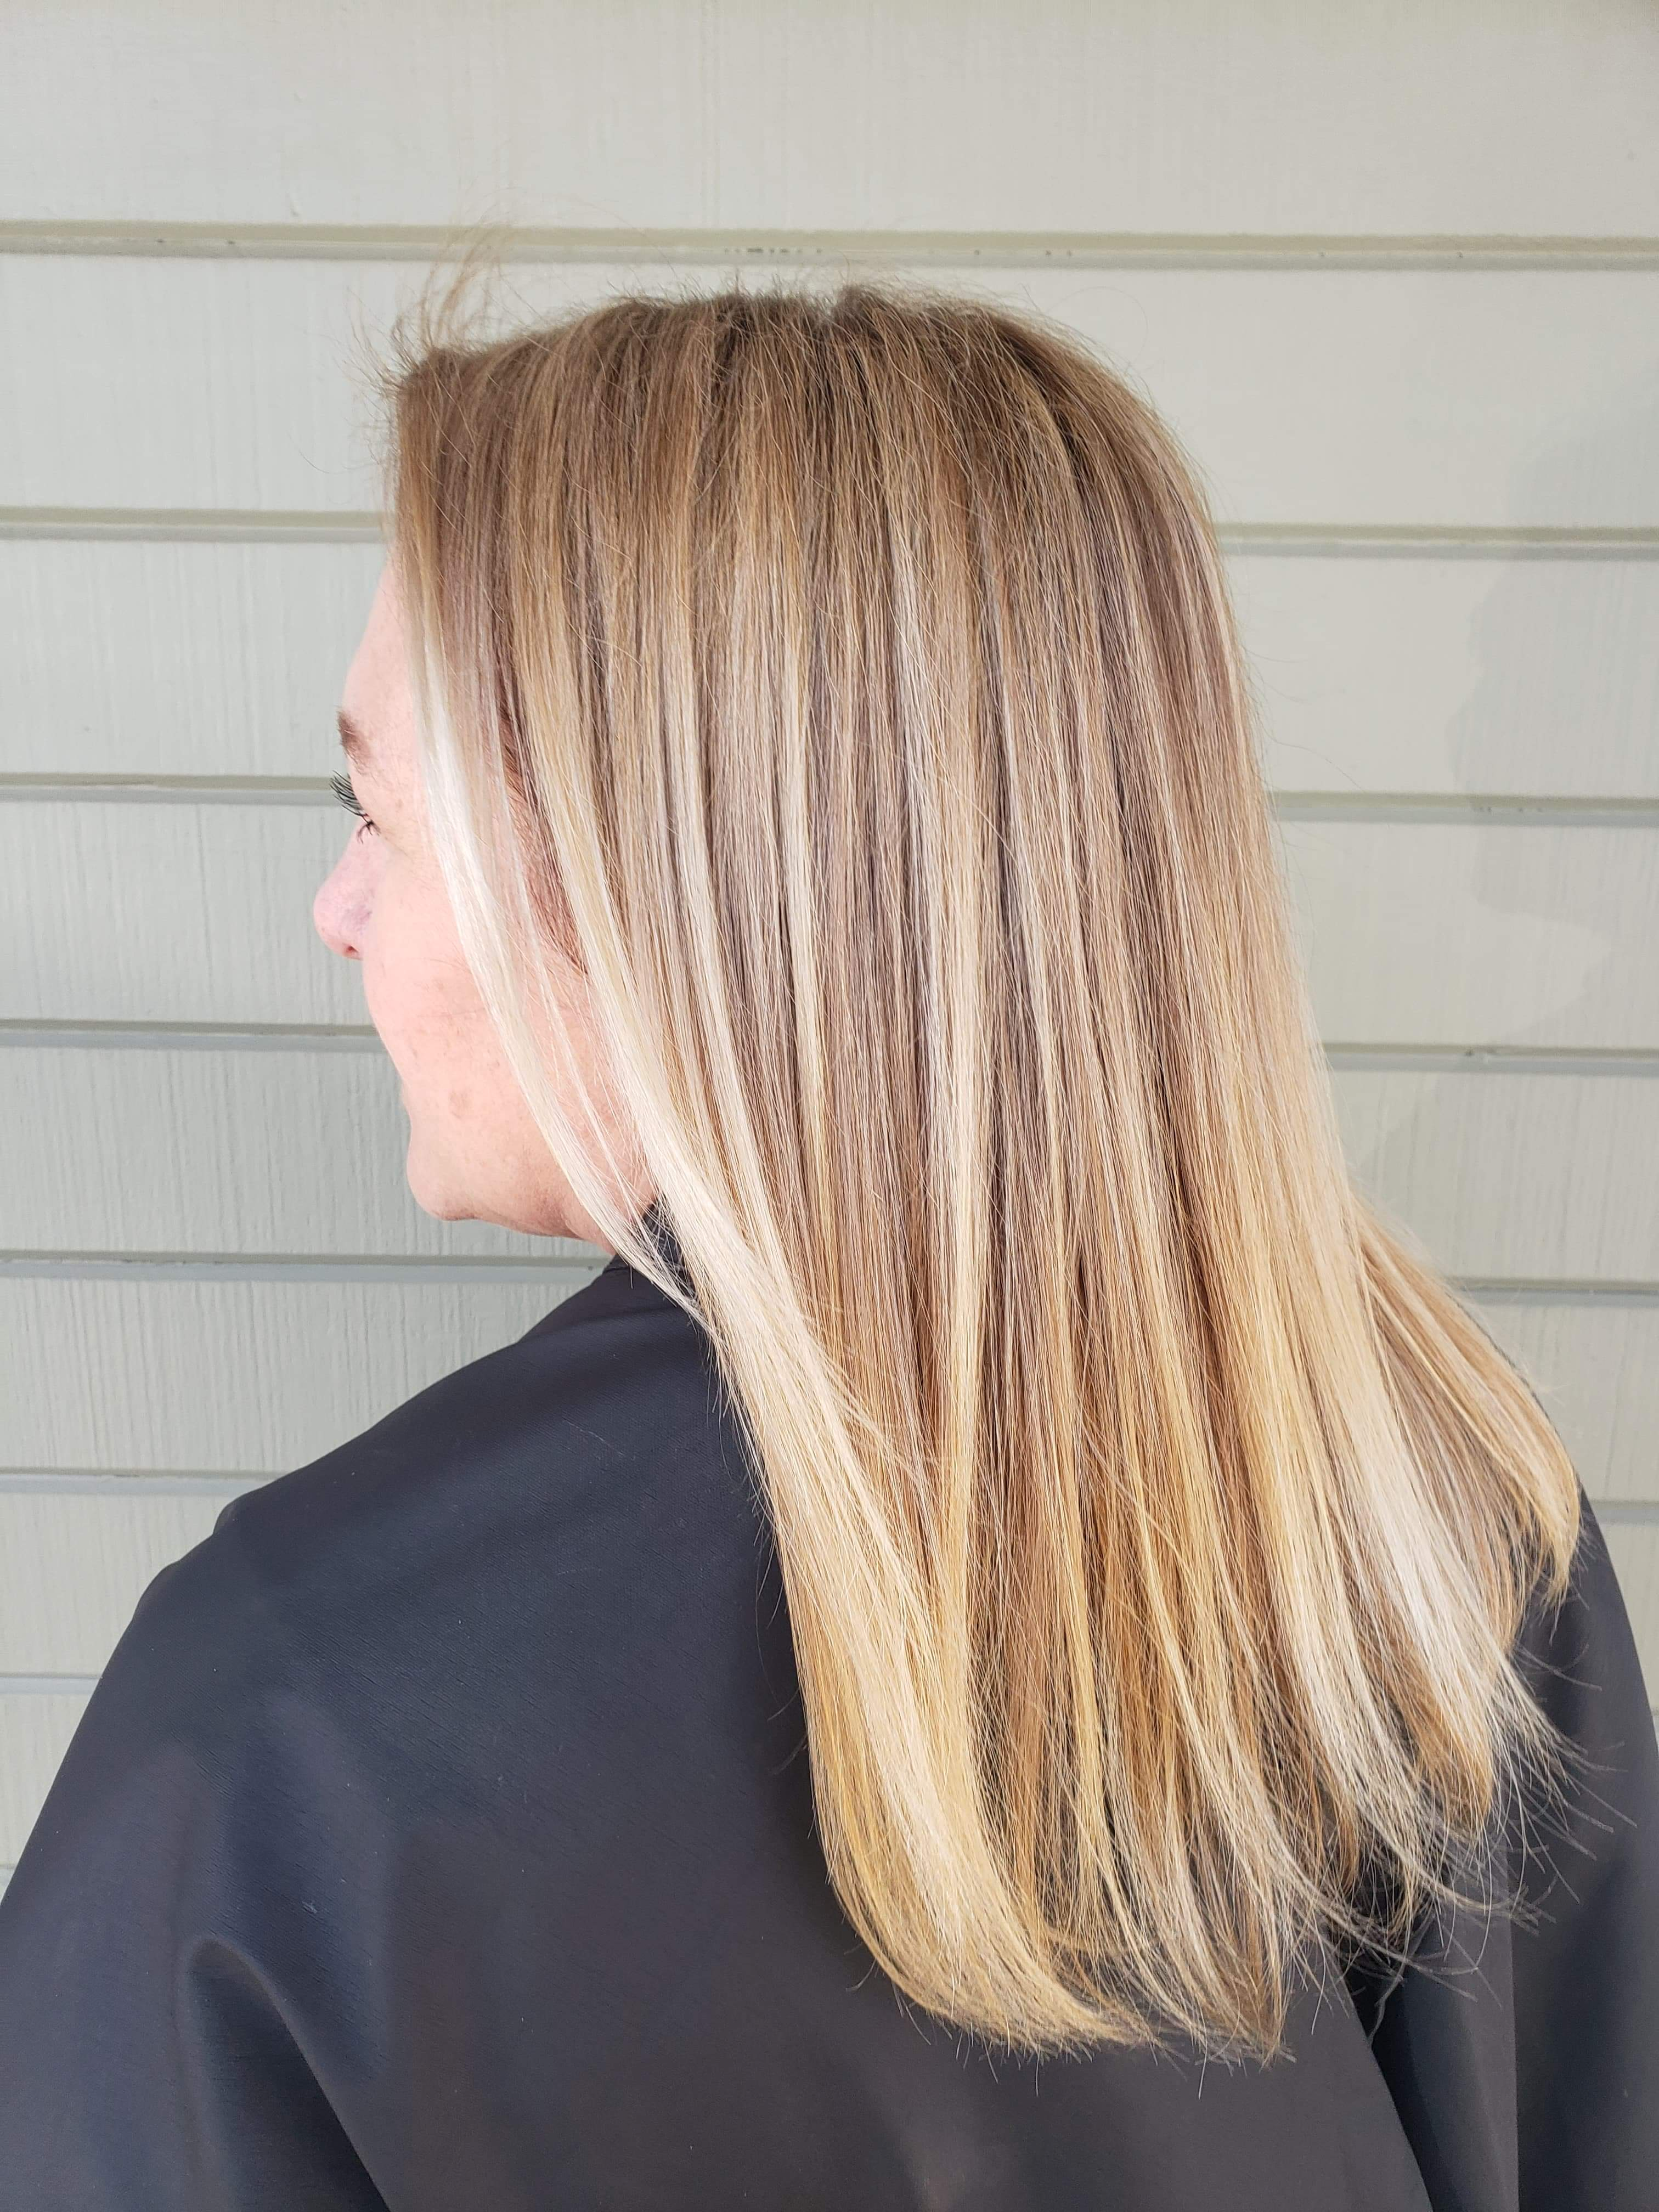 Side view of woman with medium-length blonde hair over black drape.